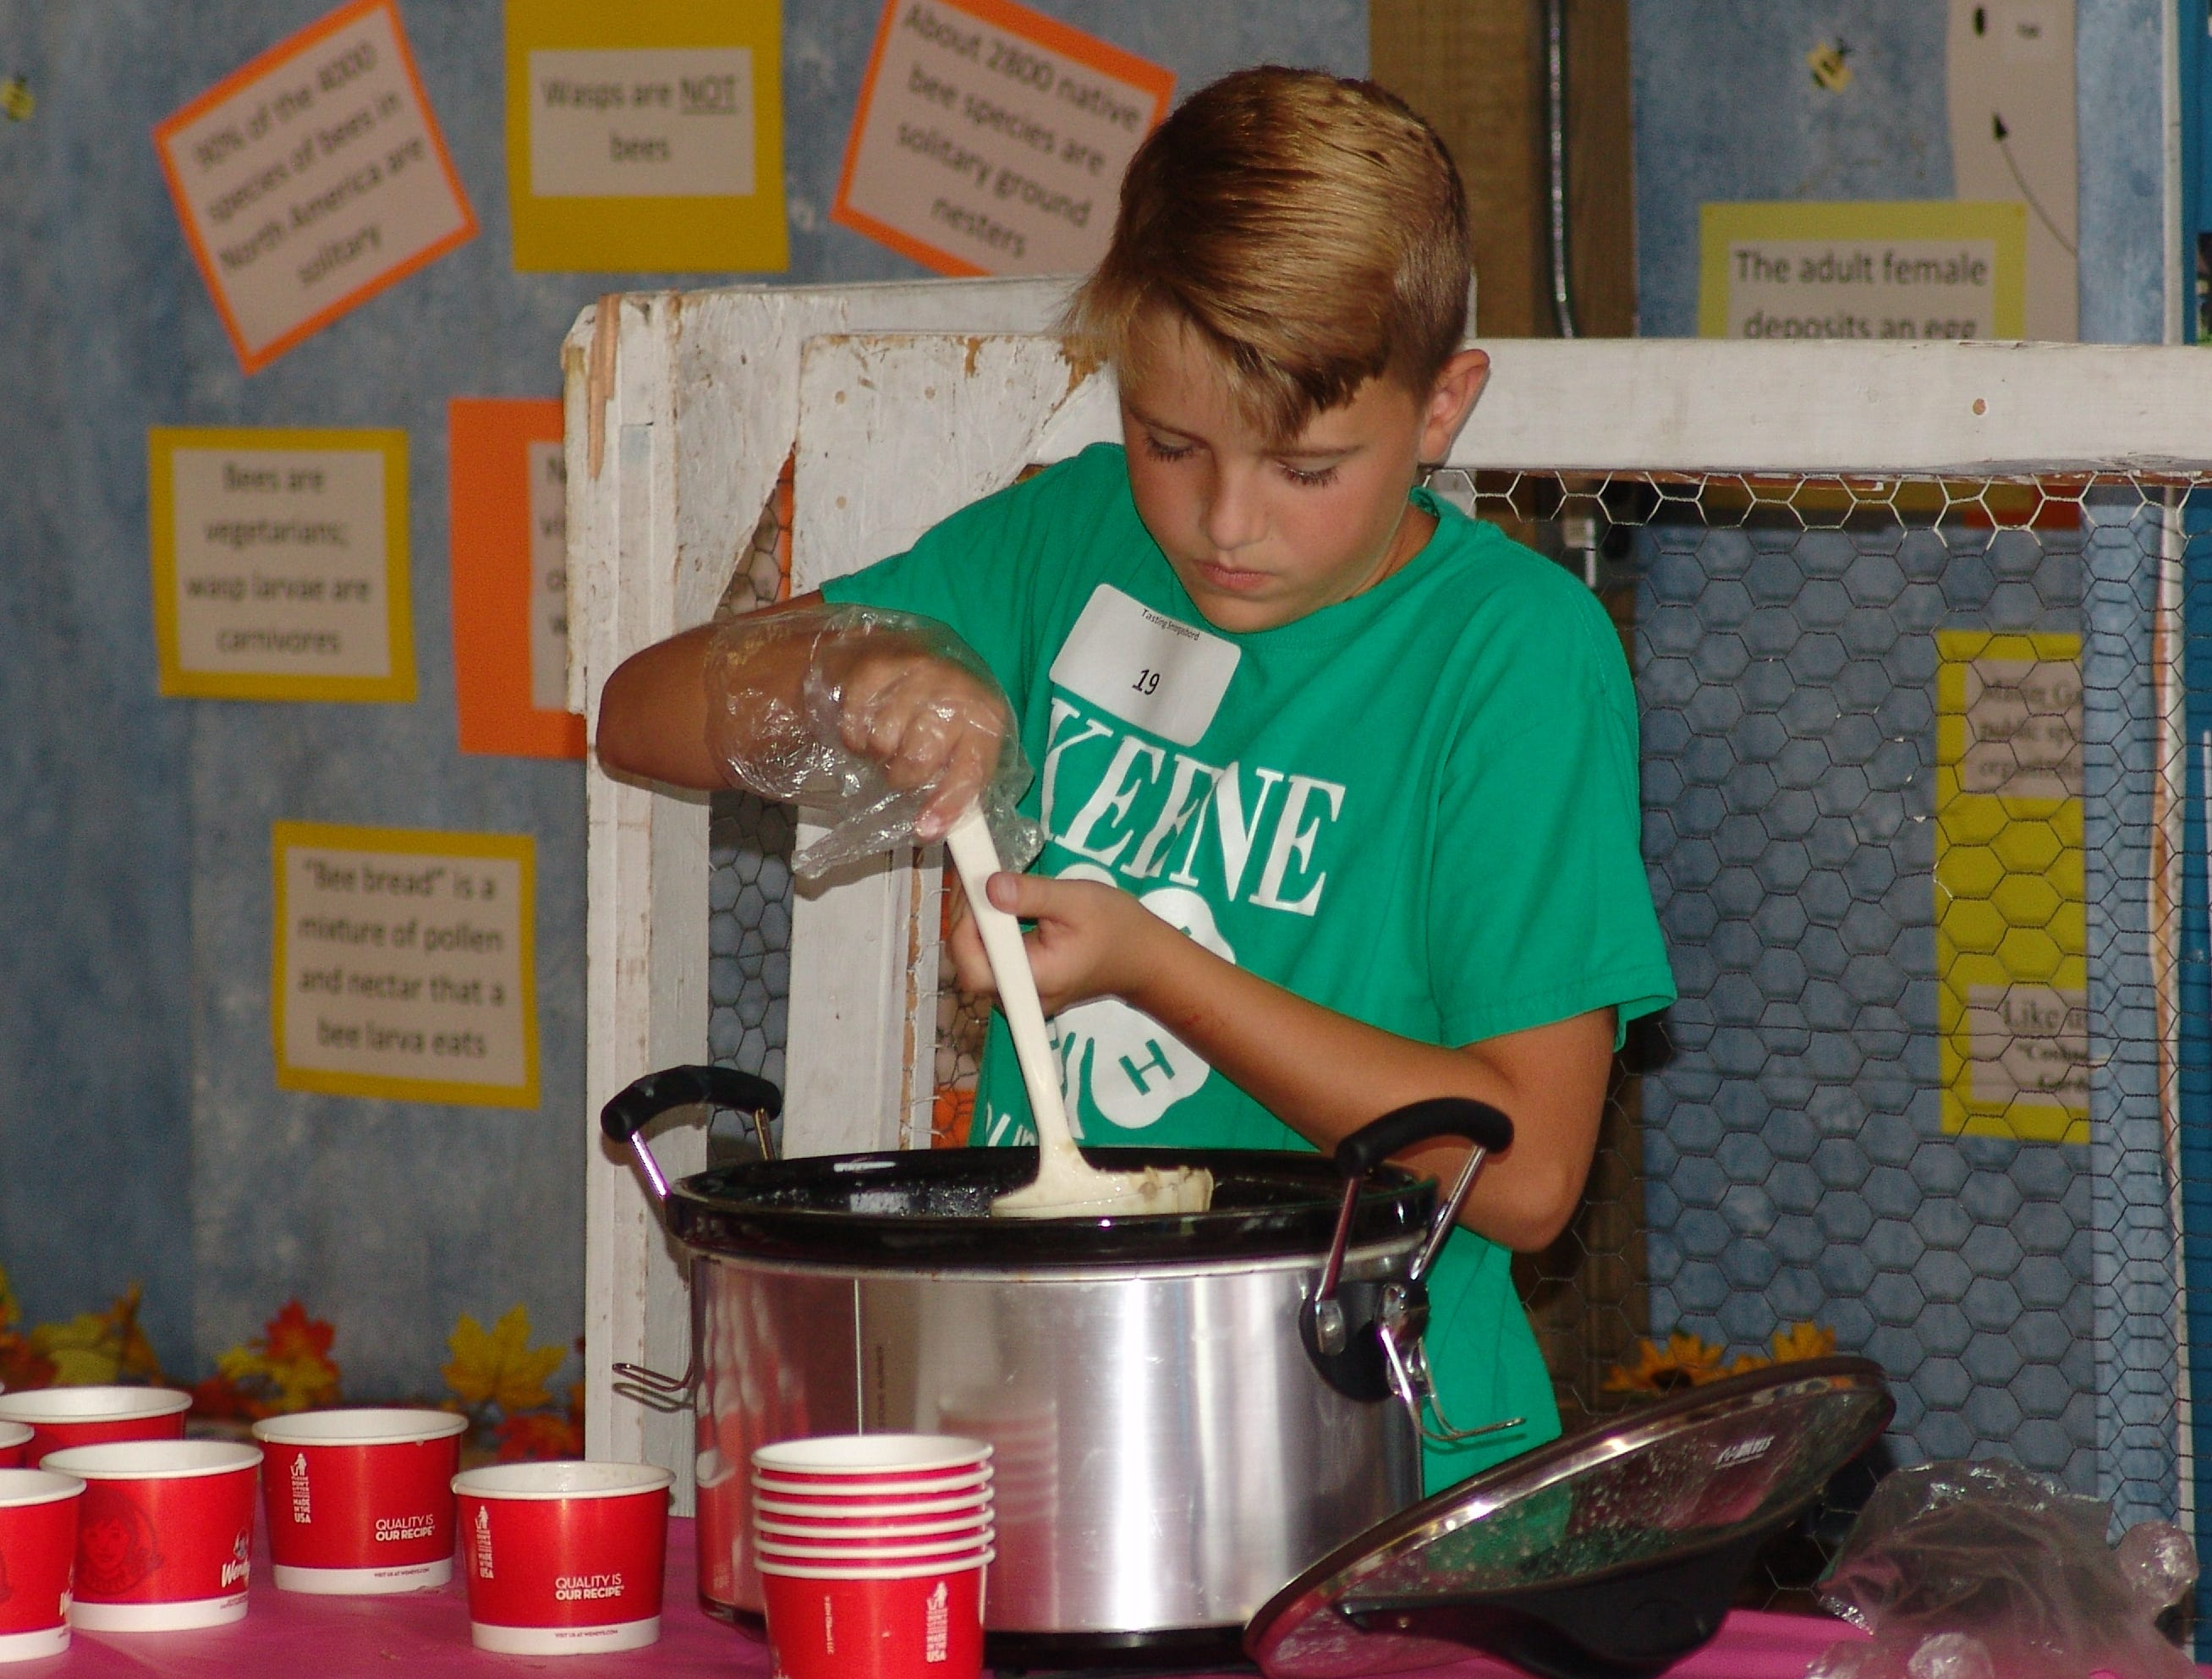 Bodey Richard prepares to serve his chicken gnocchi during the Tasting Smorgasbord at the fair.